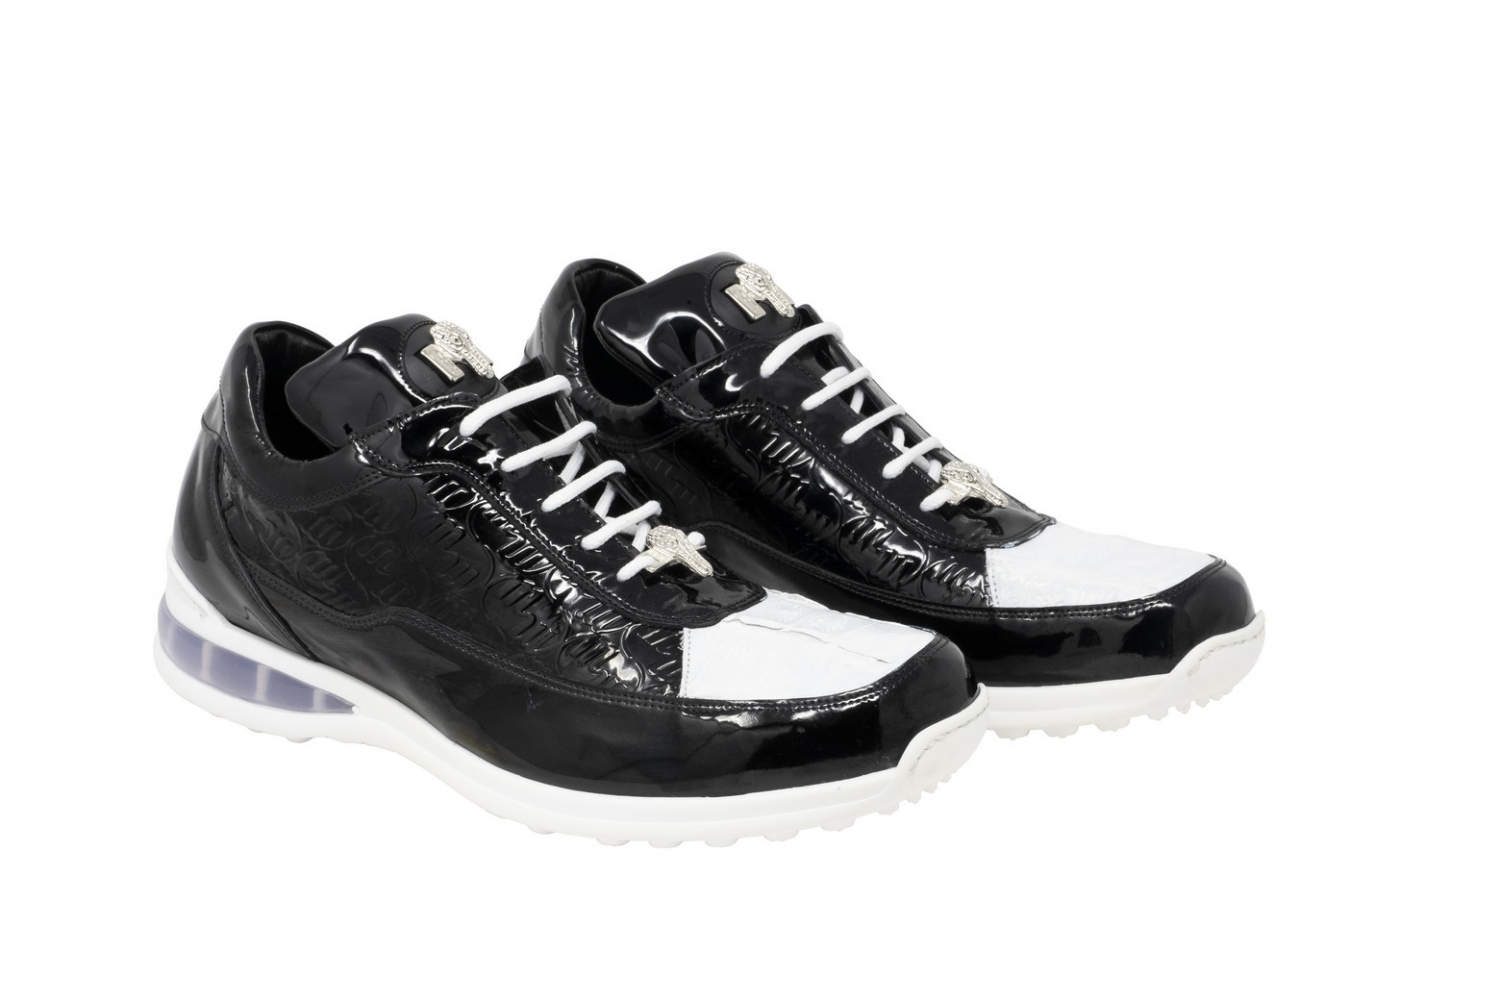 2020 Mauri Bubble Patent Leather Logo Sneaker 8900/2 Black White